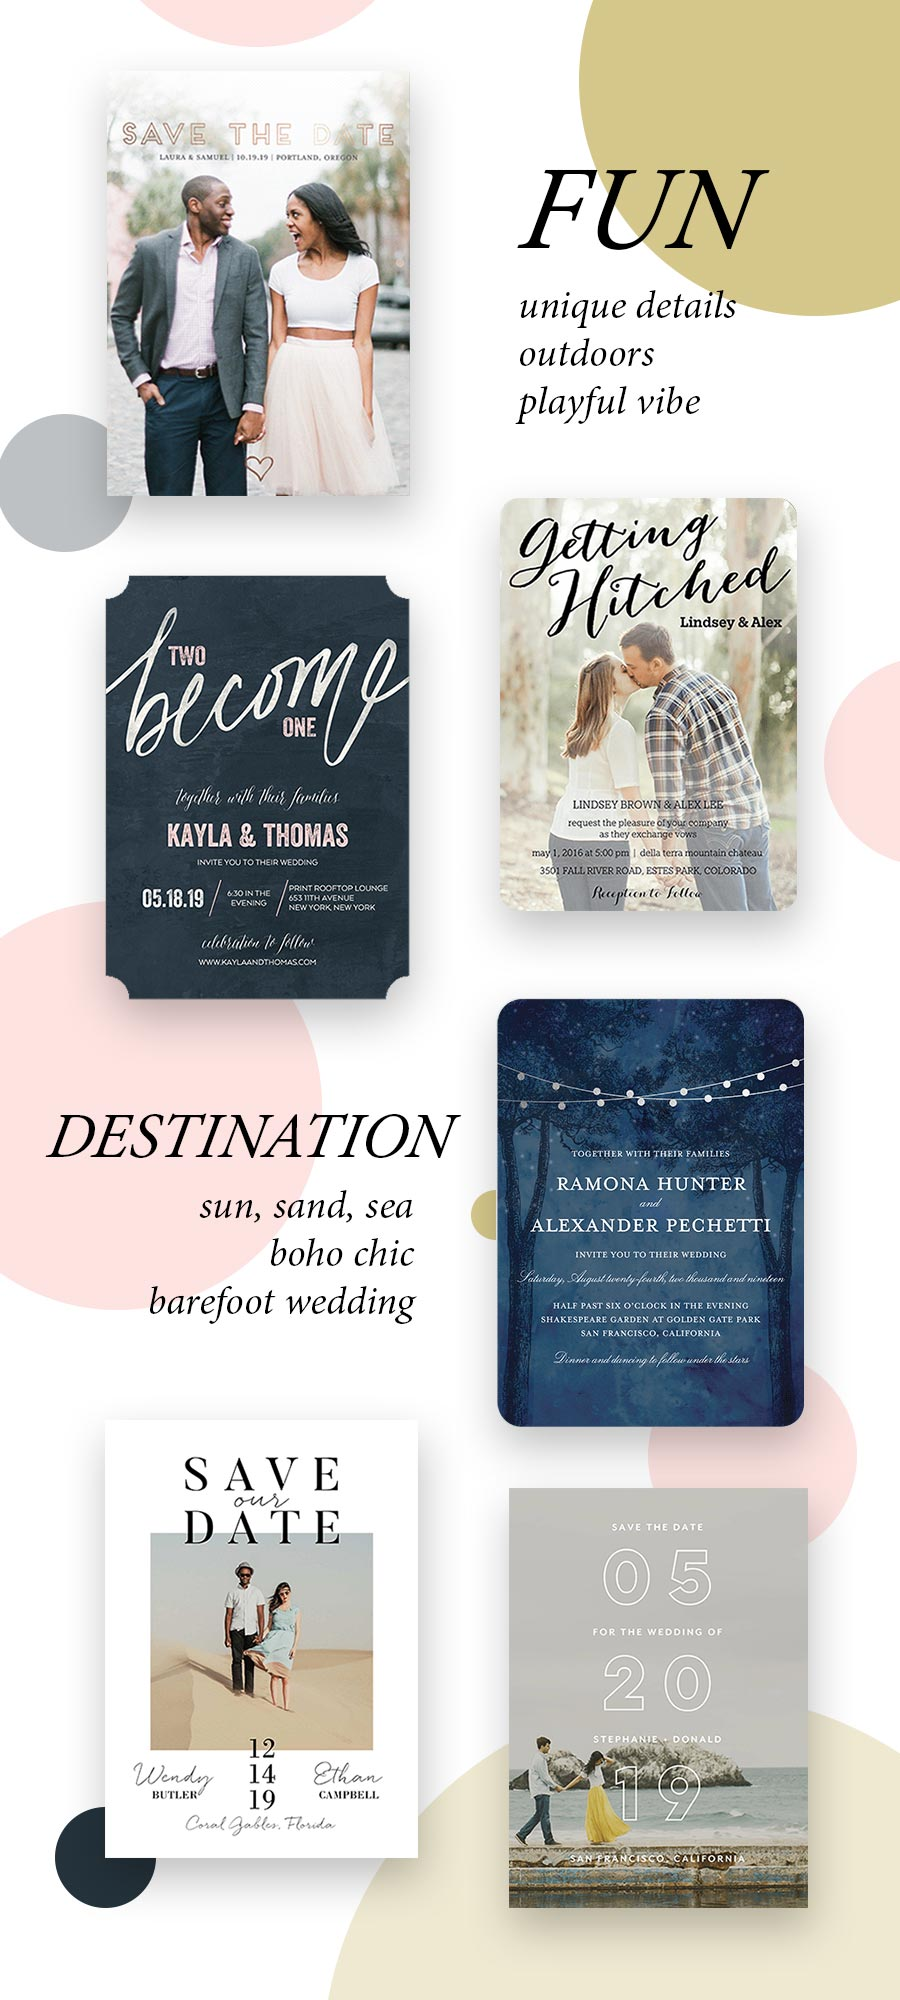 Nail Your Stationery Style with The Wedding Shop by Shutterfly ...